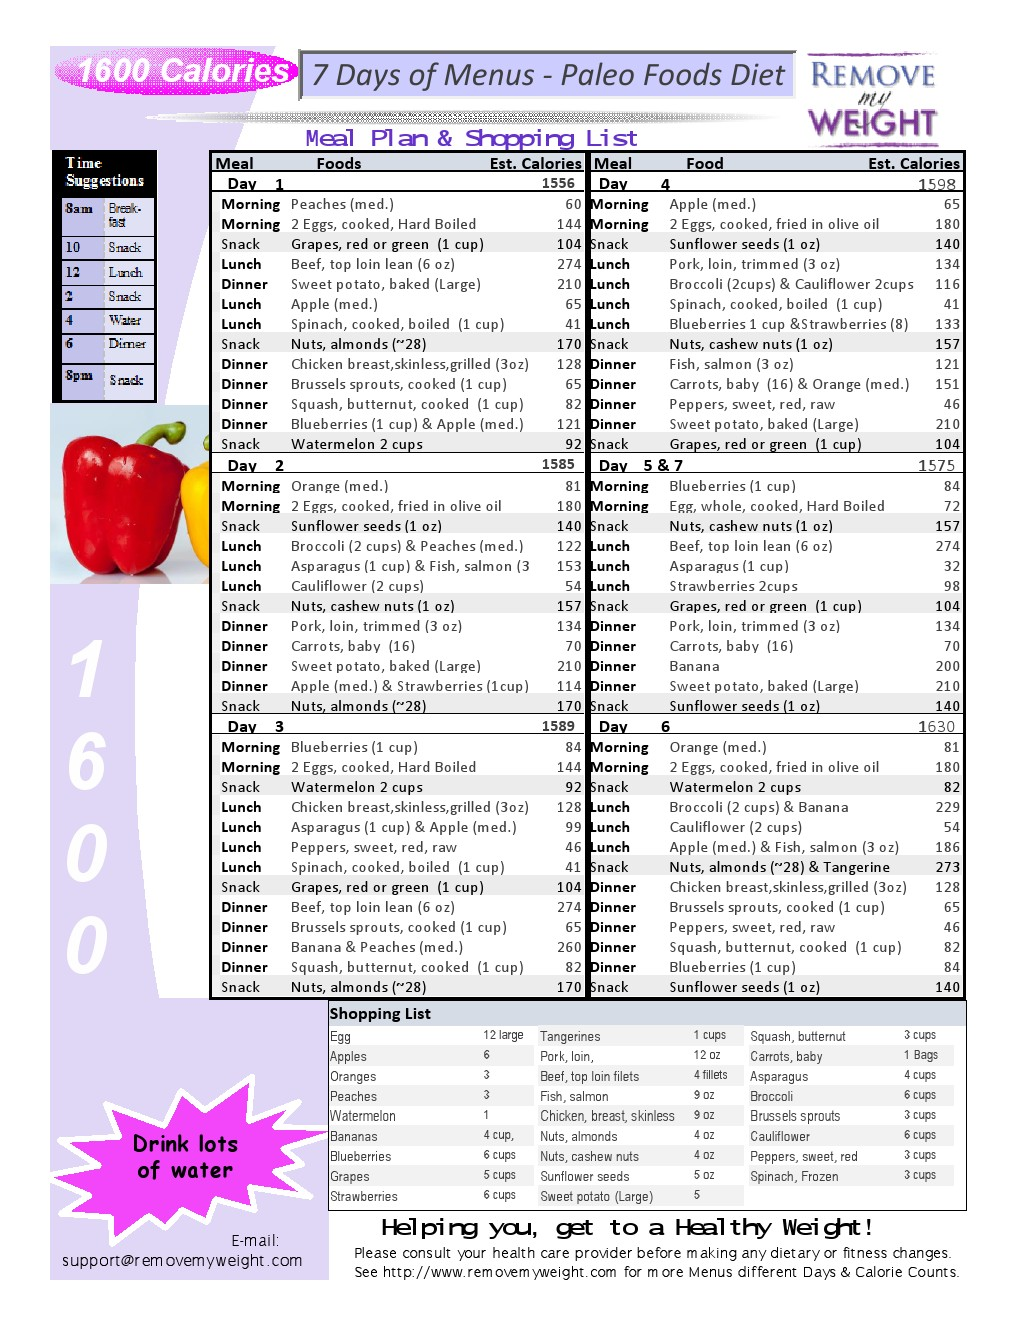 All about the 500 calorie diet